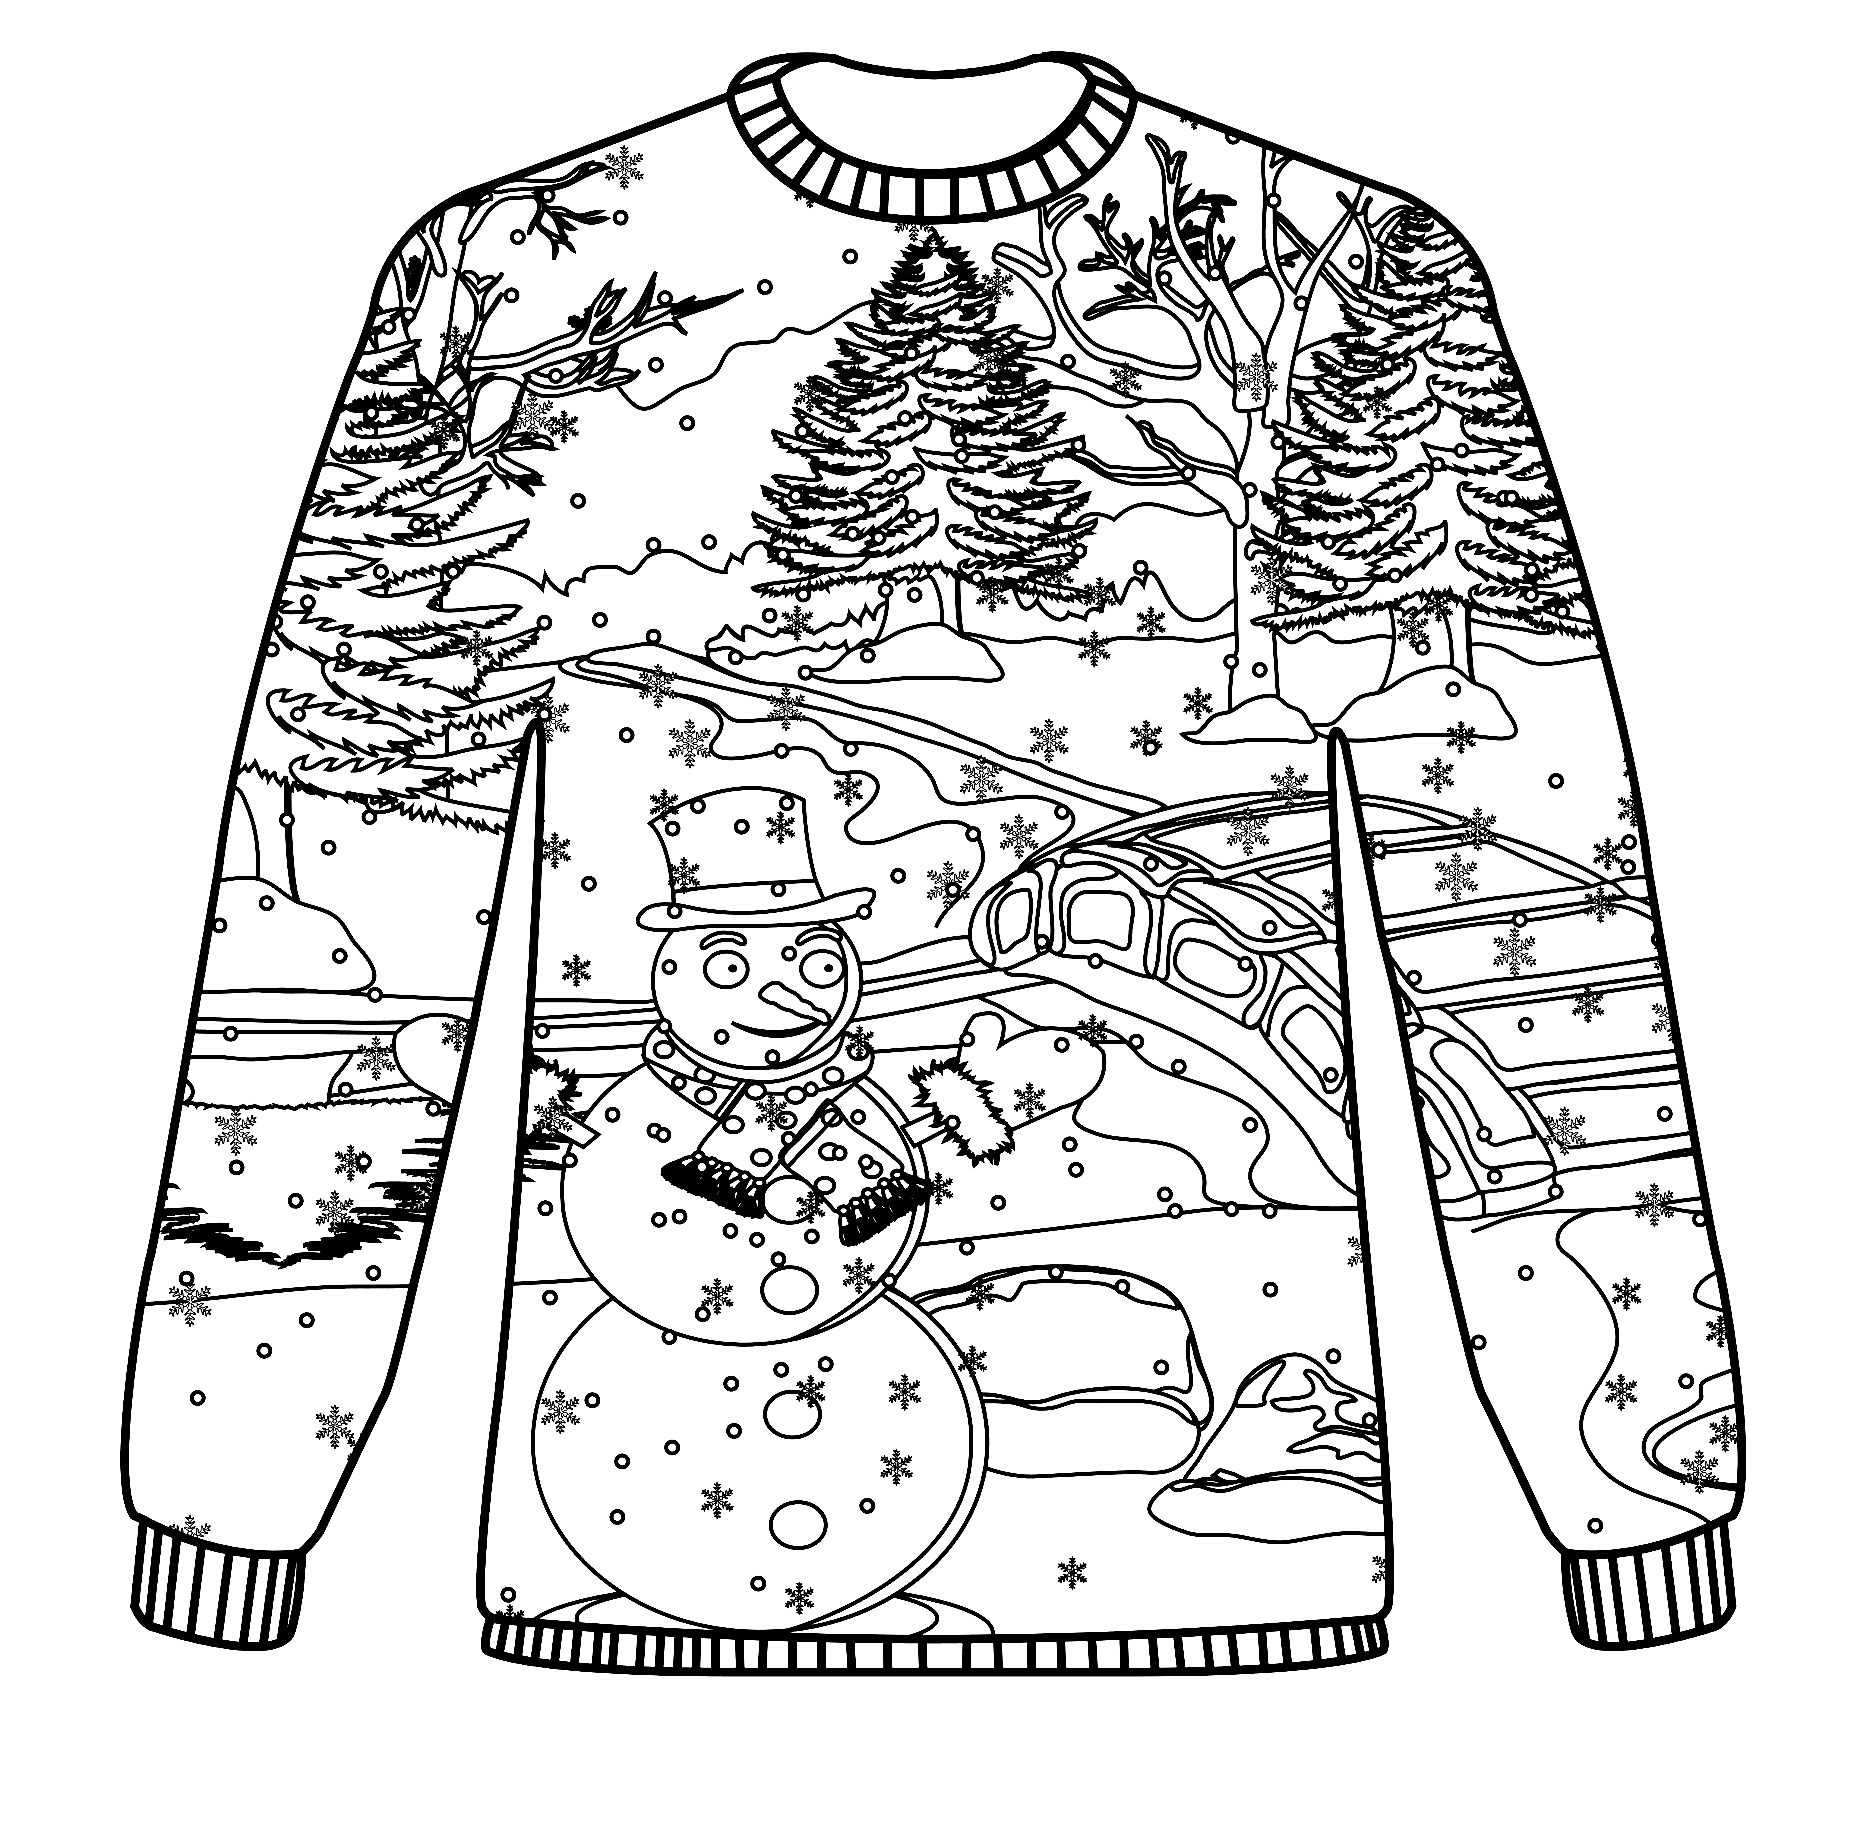 Sweater with Snowman and Christmas Tree Coloring Page